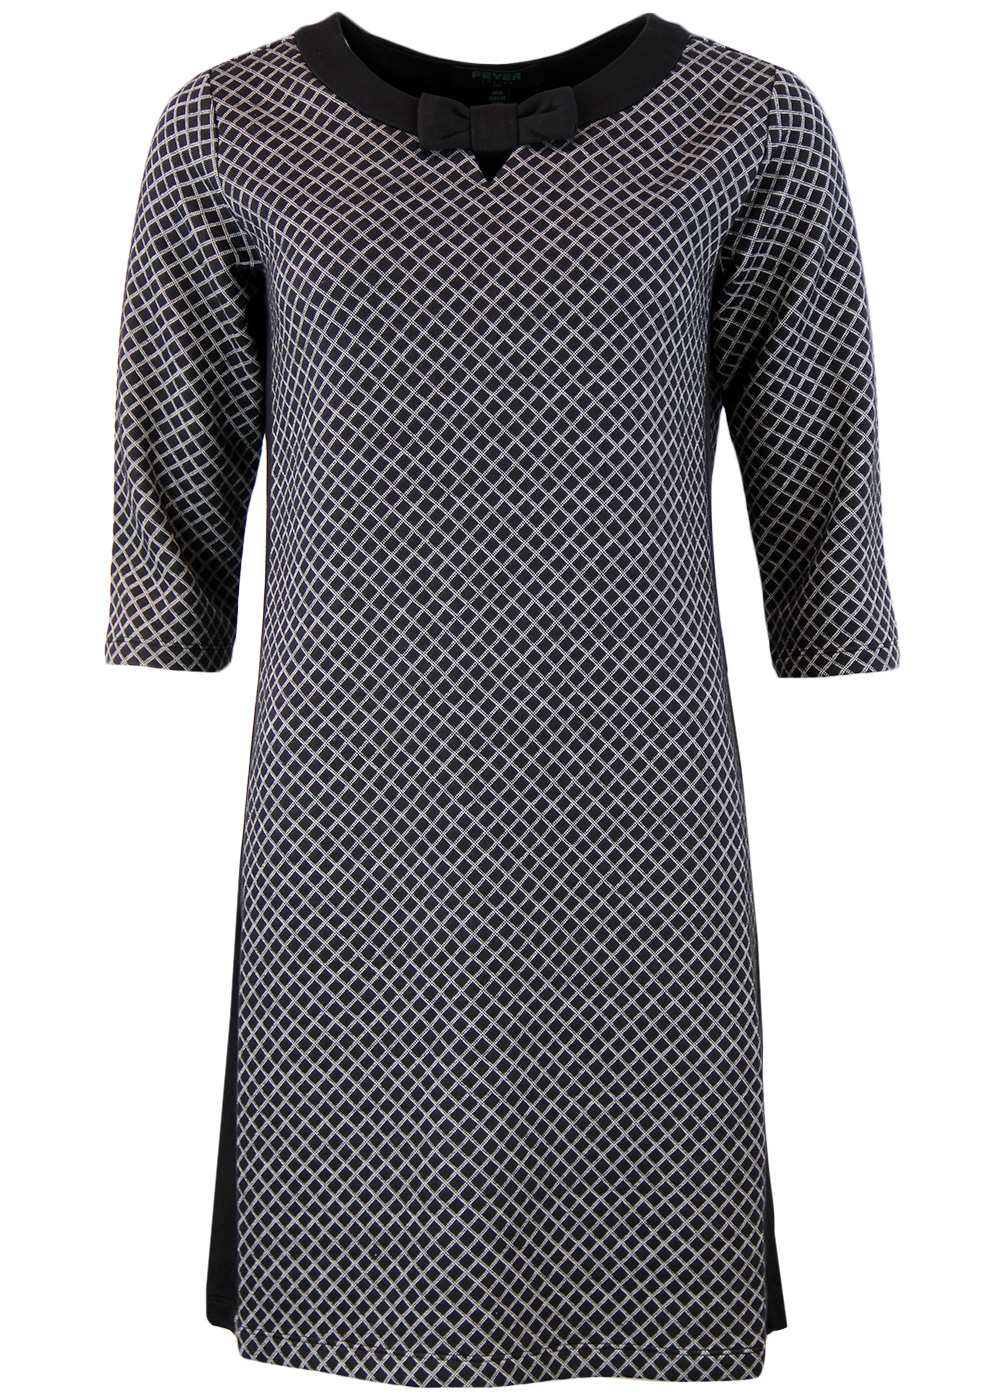 Lori FEVER Retro 1960s Mod Square Geo Bow Dress